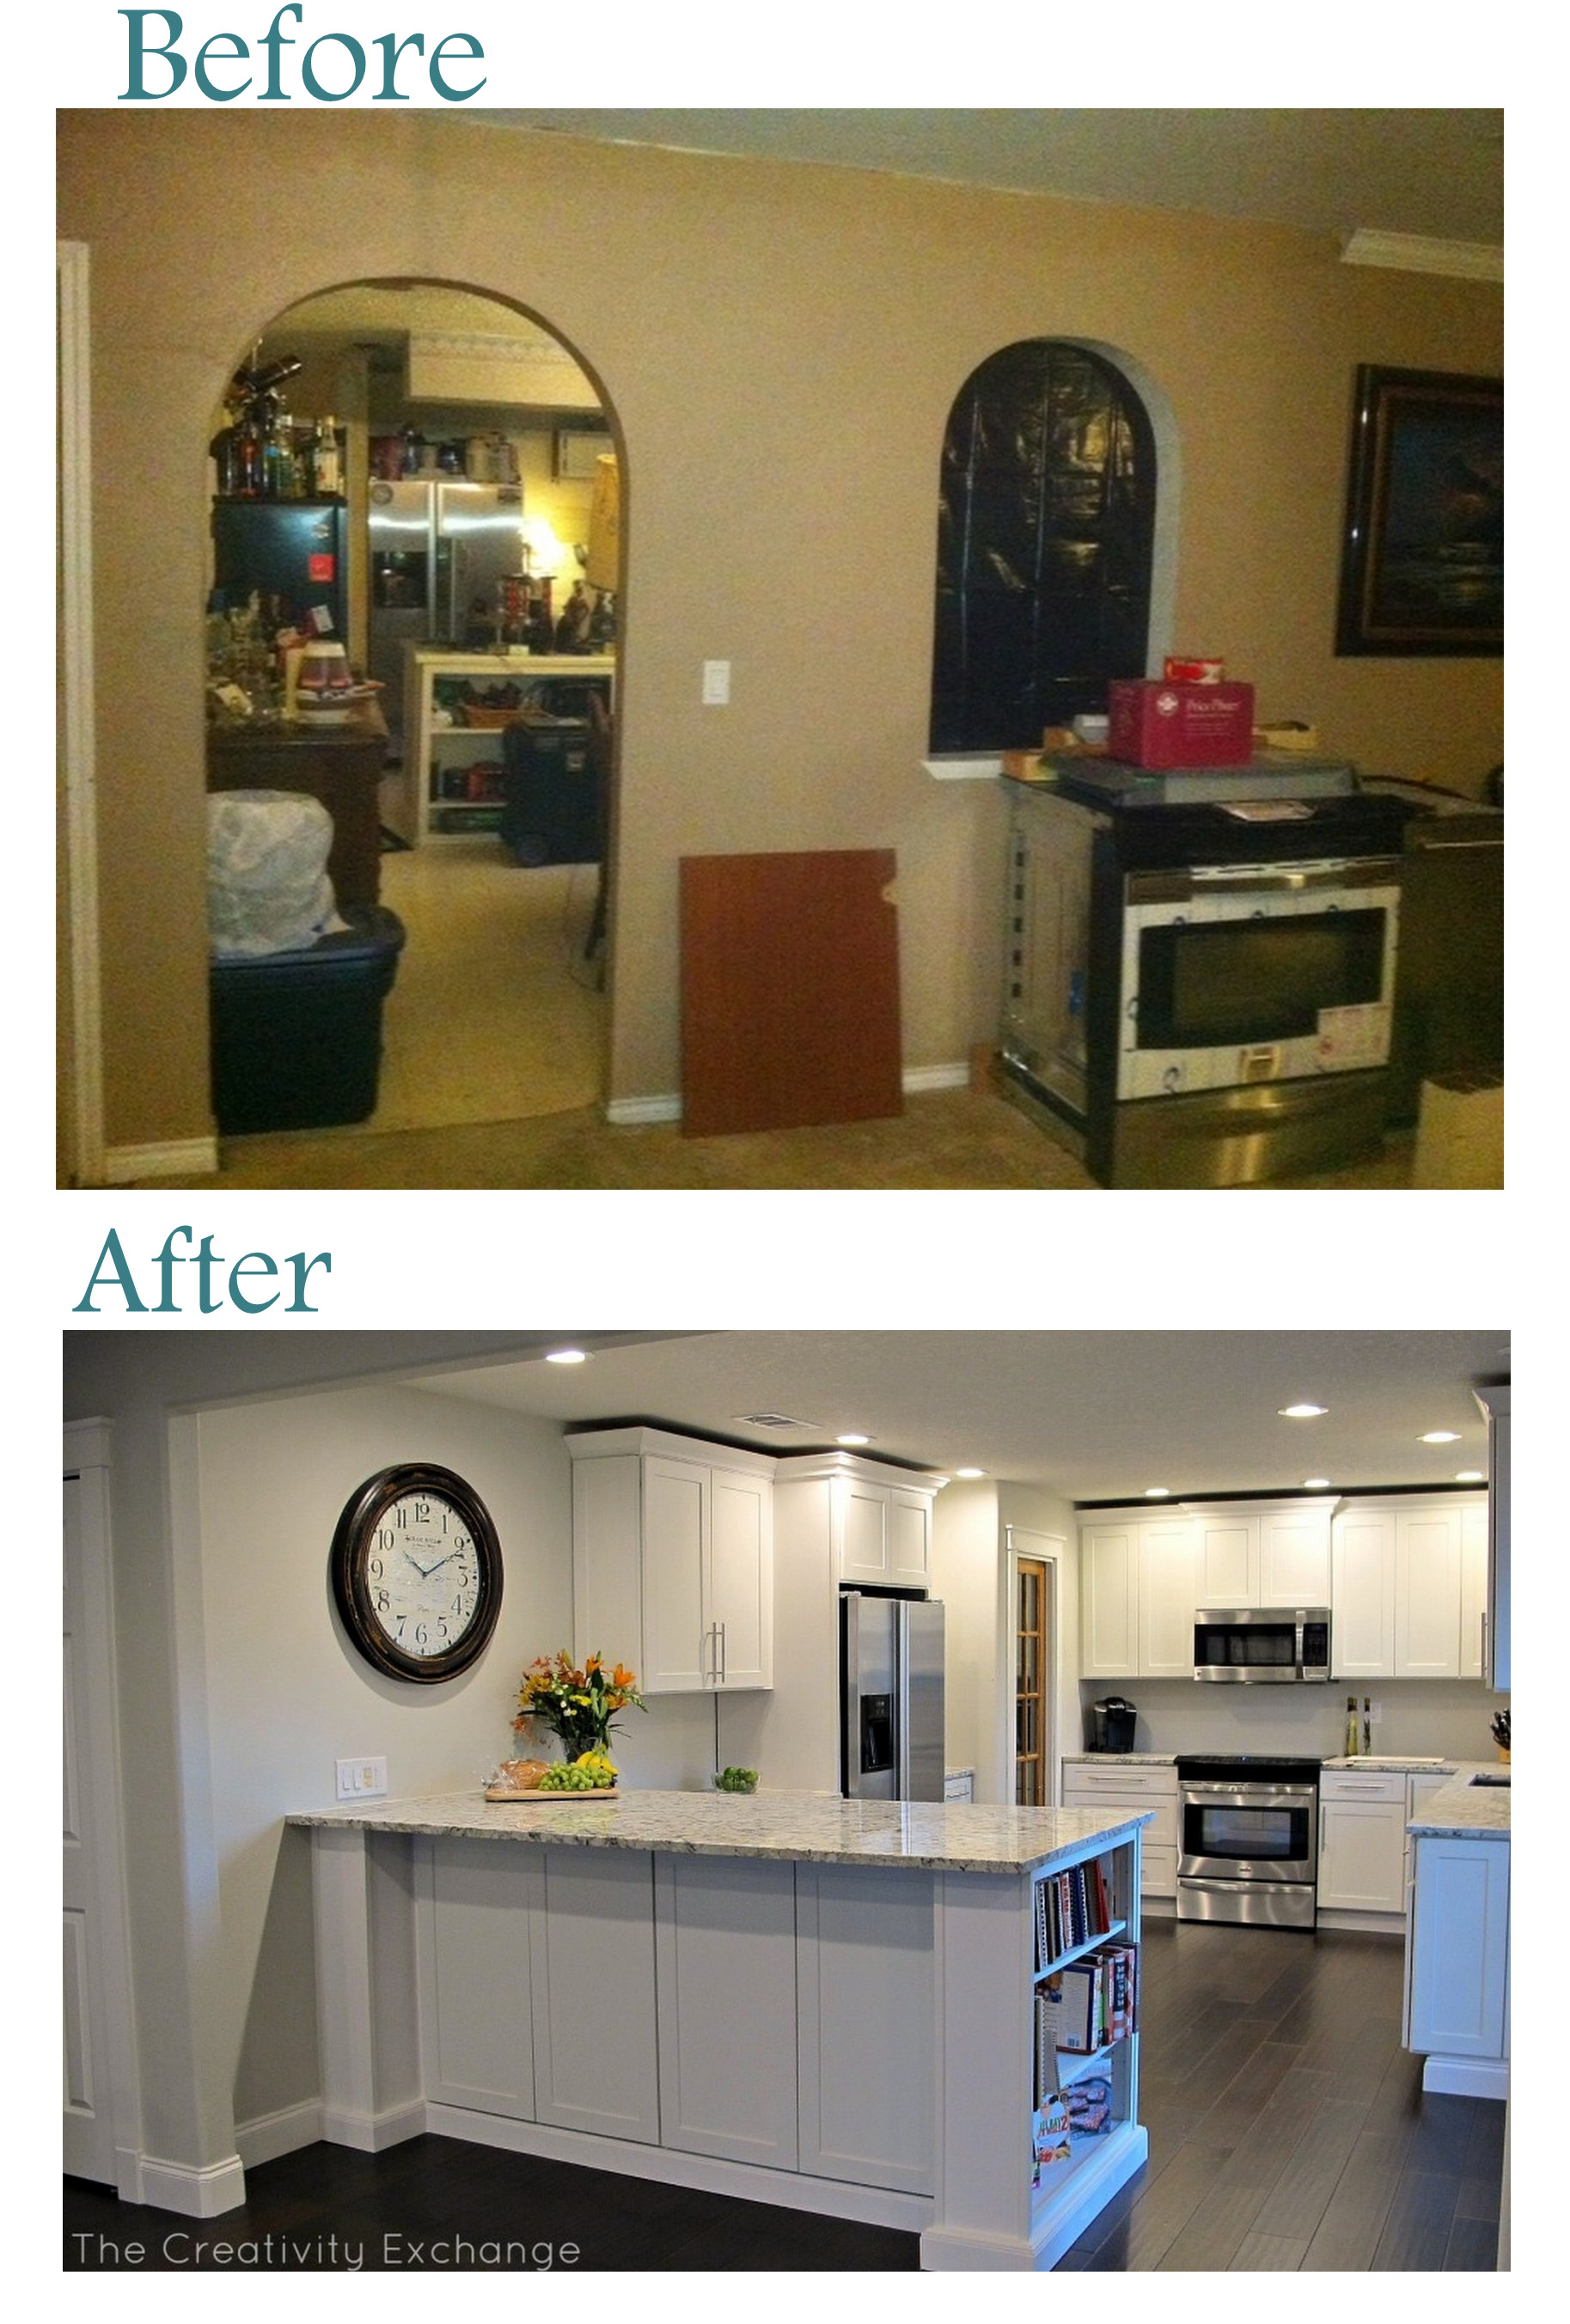 cousin franks amazing kitchen remodel before after diy kitchen remodel Amazing DIY kitchen remodel with specs and product info The Creativity Exchange